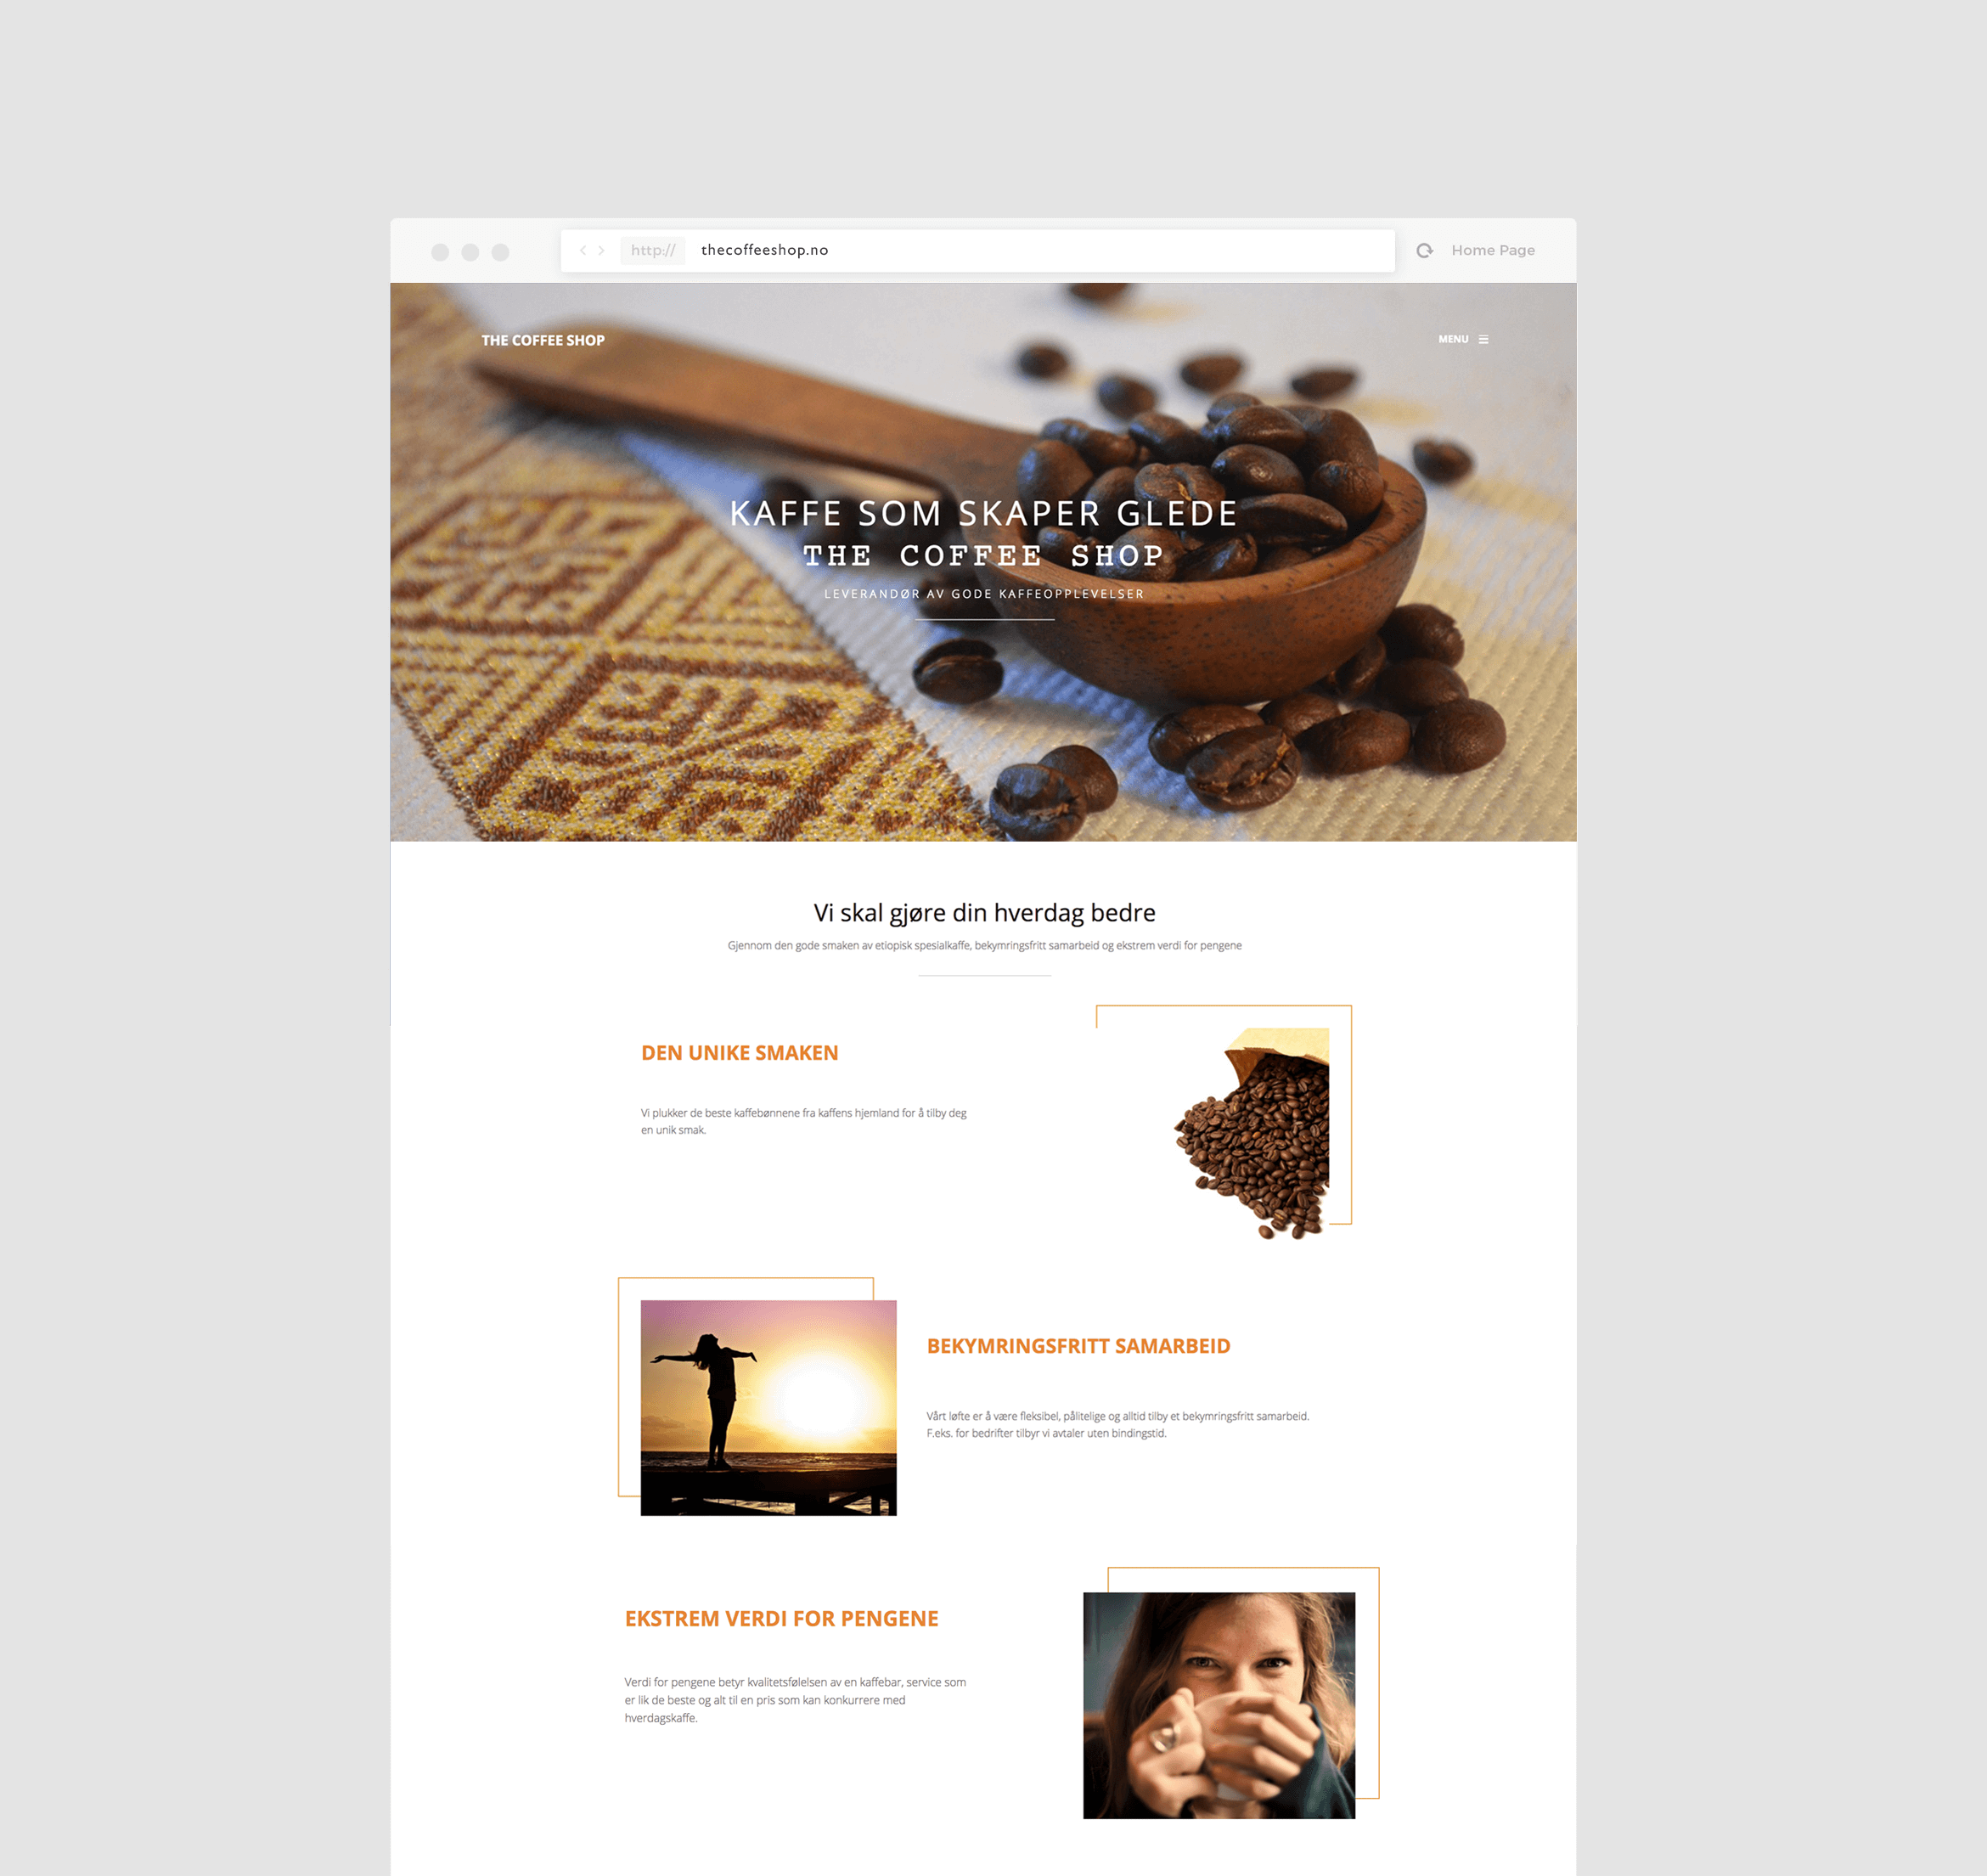 The Coffee Shop Website Design Service by Resolution Studio